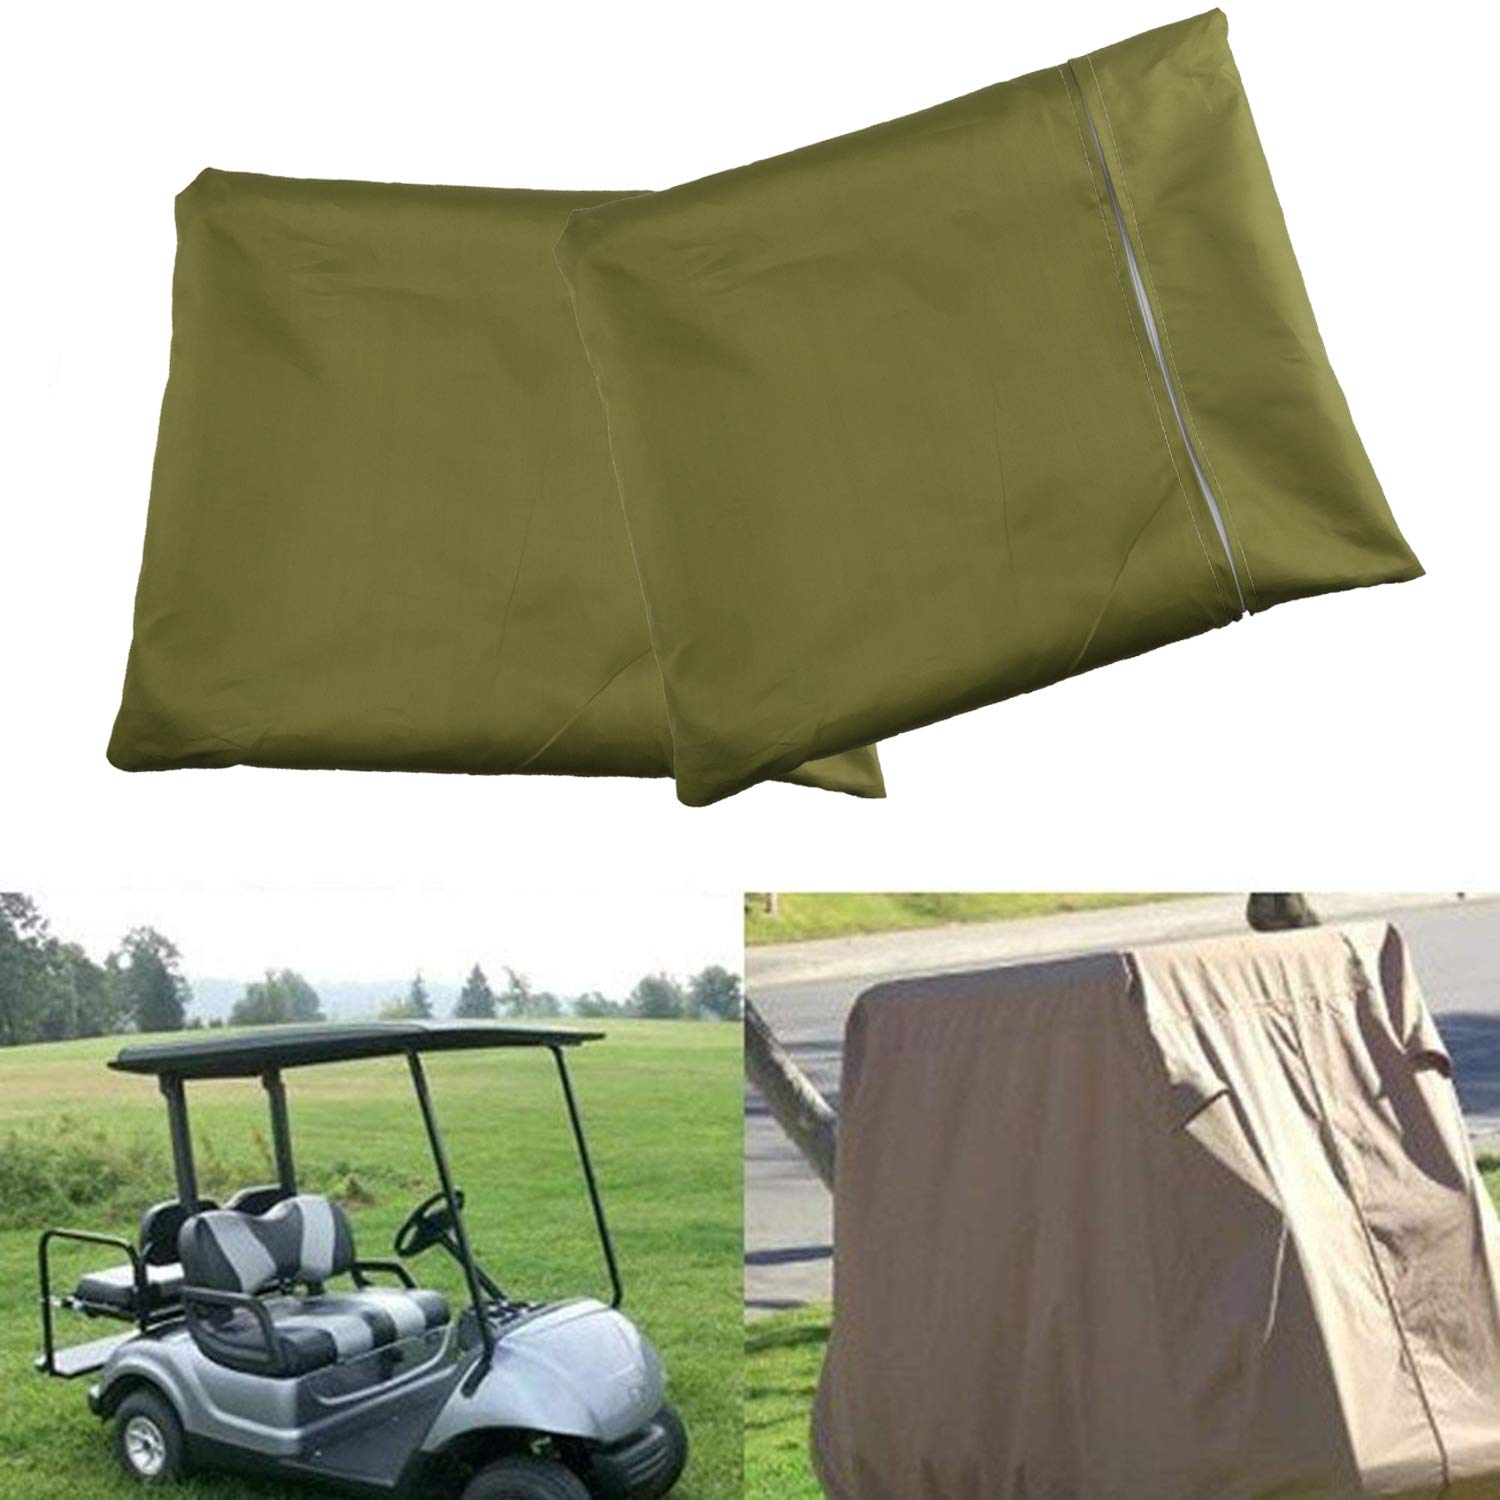 Plum Garden 4 Passenger Waterproof Golf Cart Cover for EZ Go Club Car Yamaha Cart